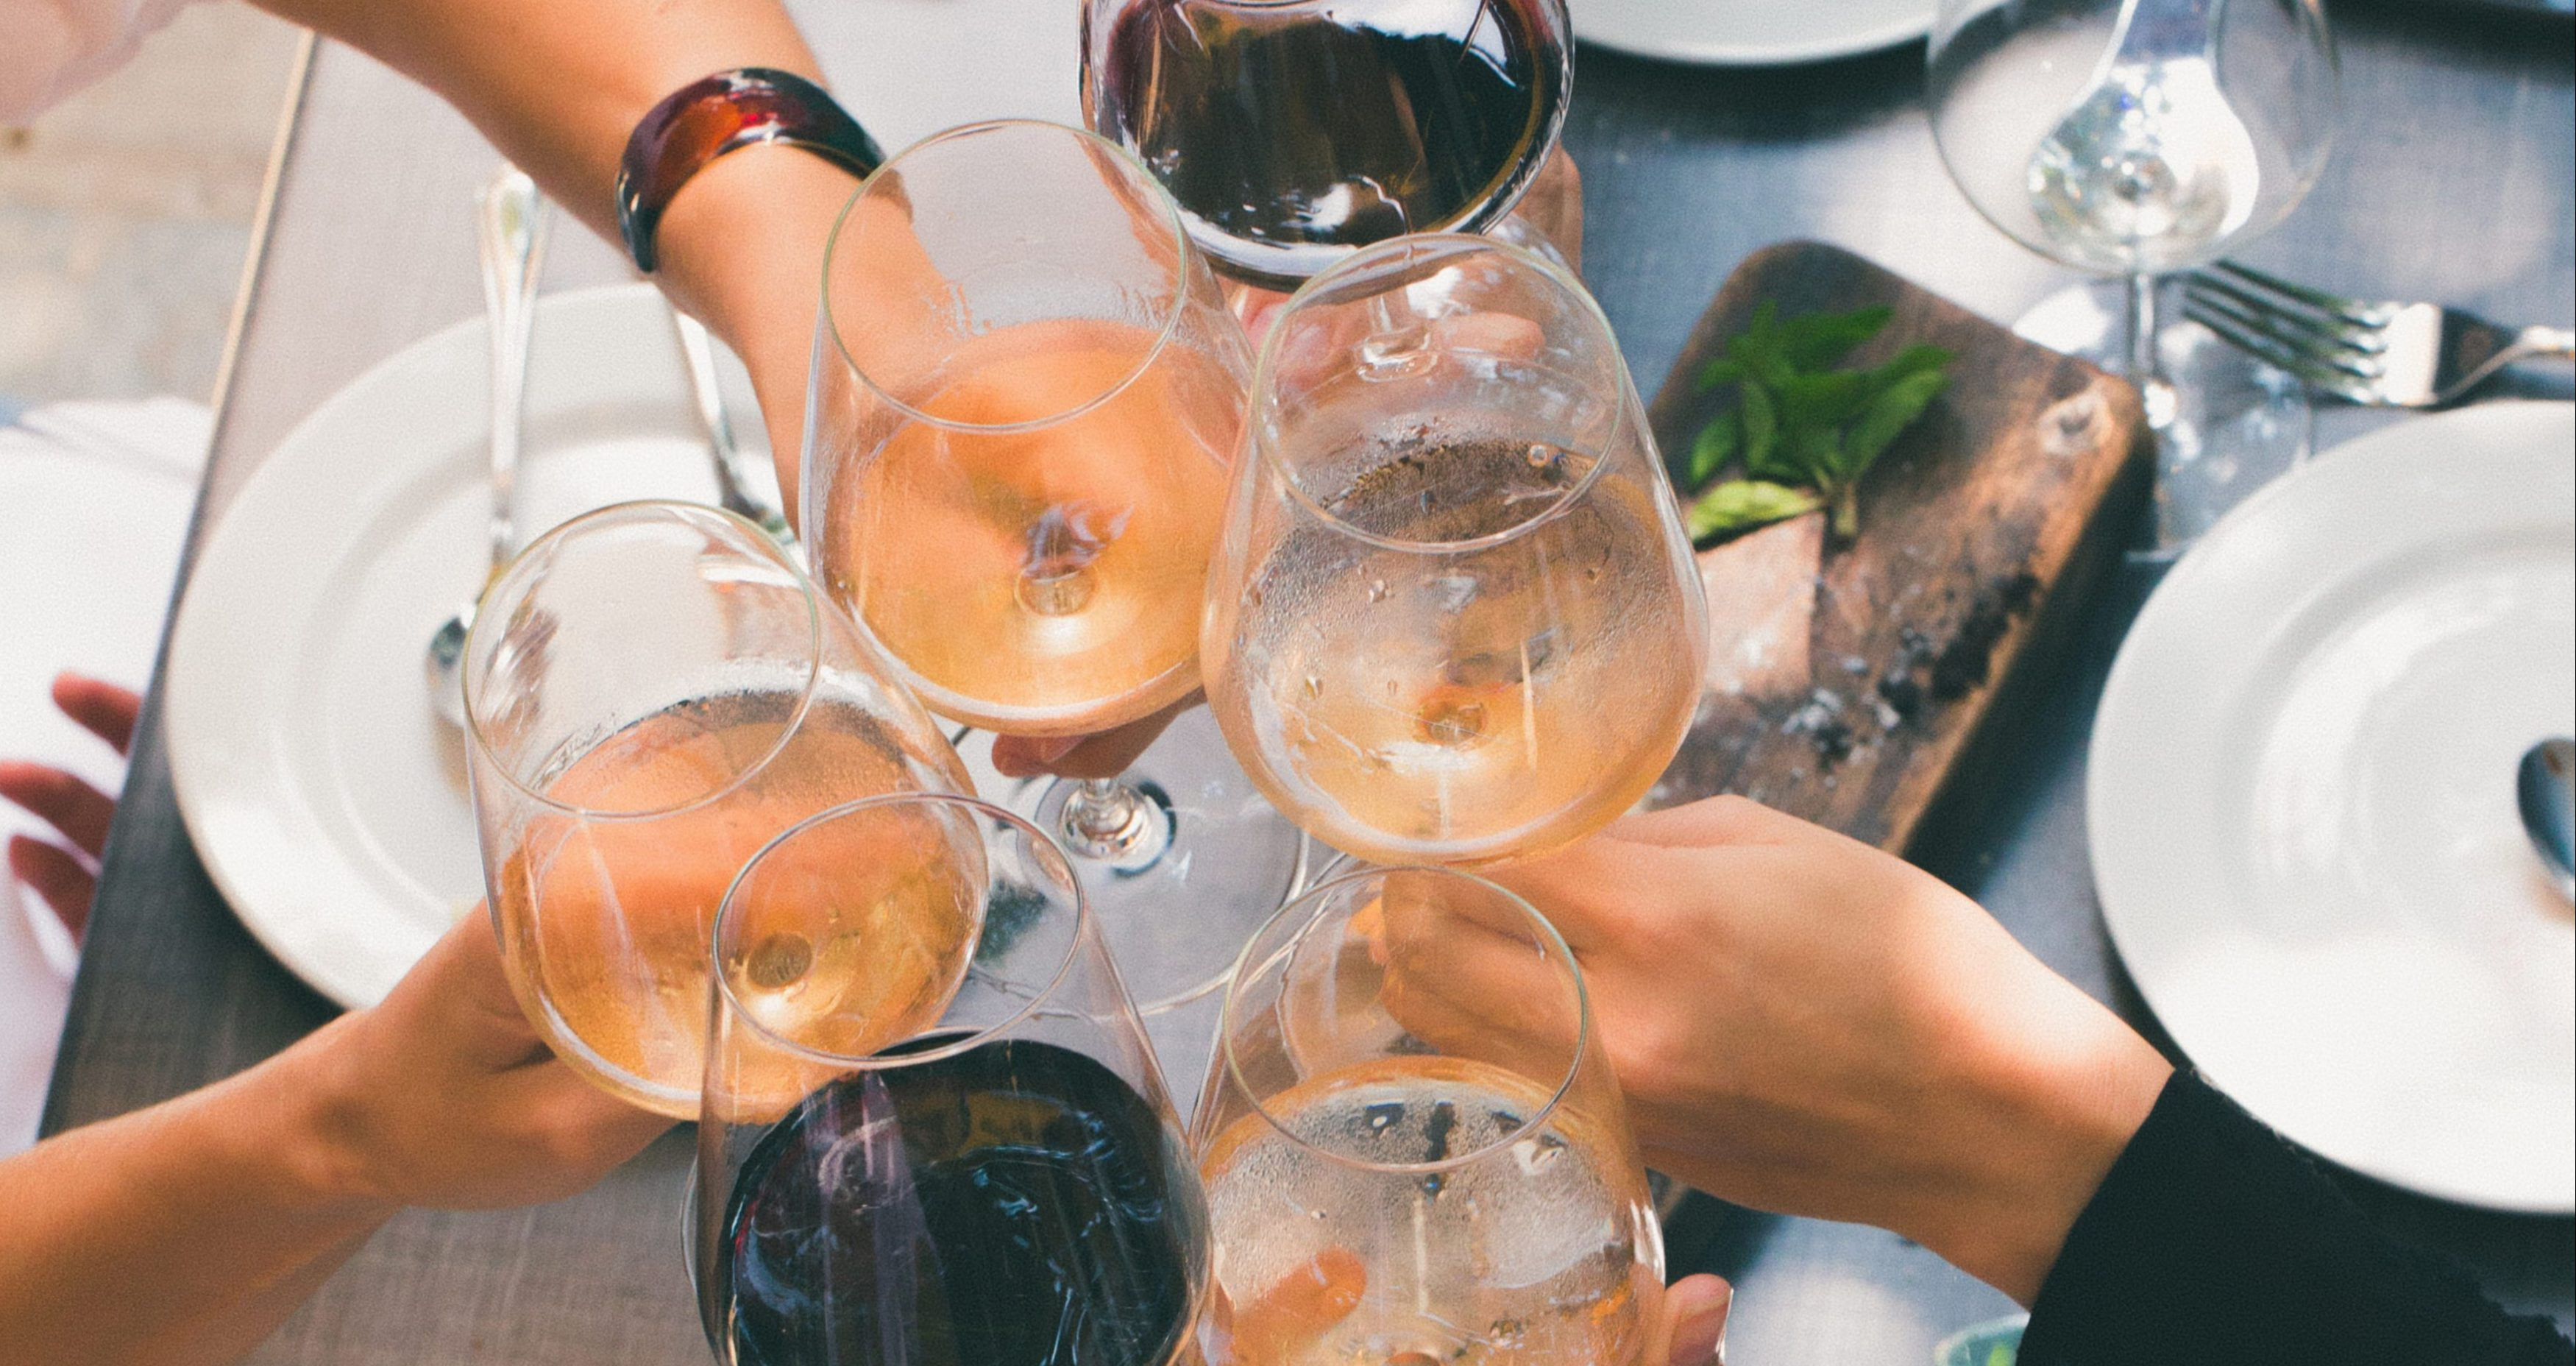 When is Wine O'Clock? What Time of Day is Acceptable to Start Drinking? |